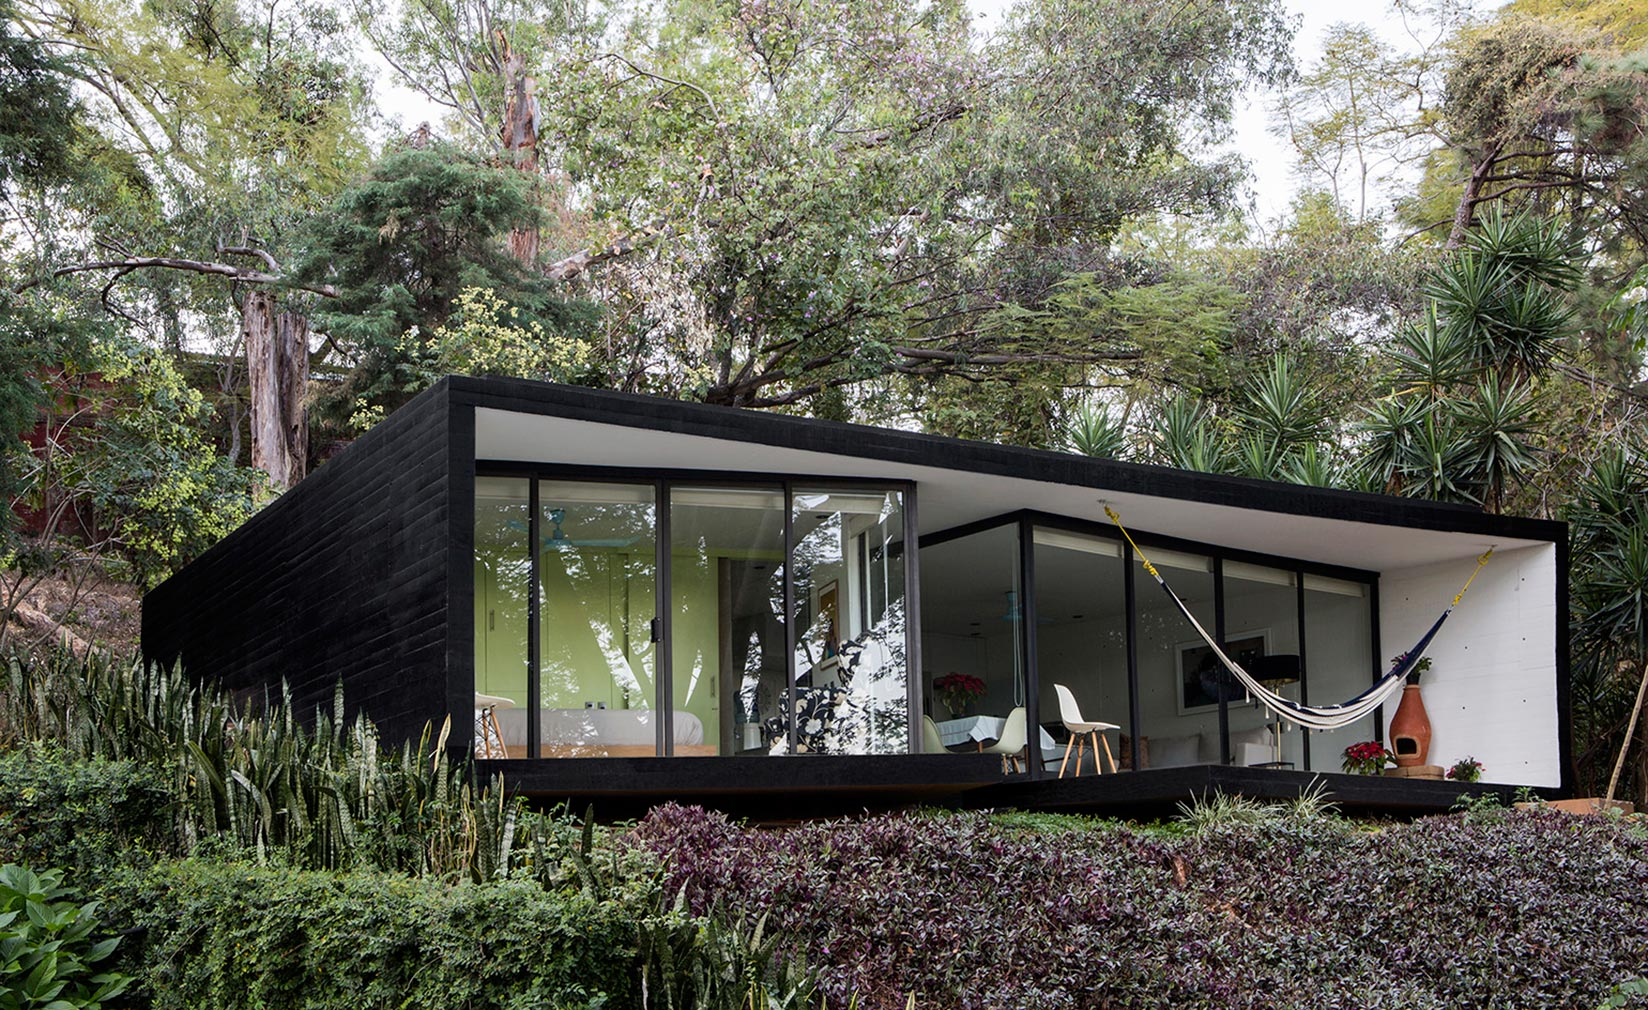 LMM Bungalow by Cadaval and Sola Morales